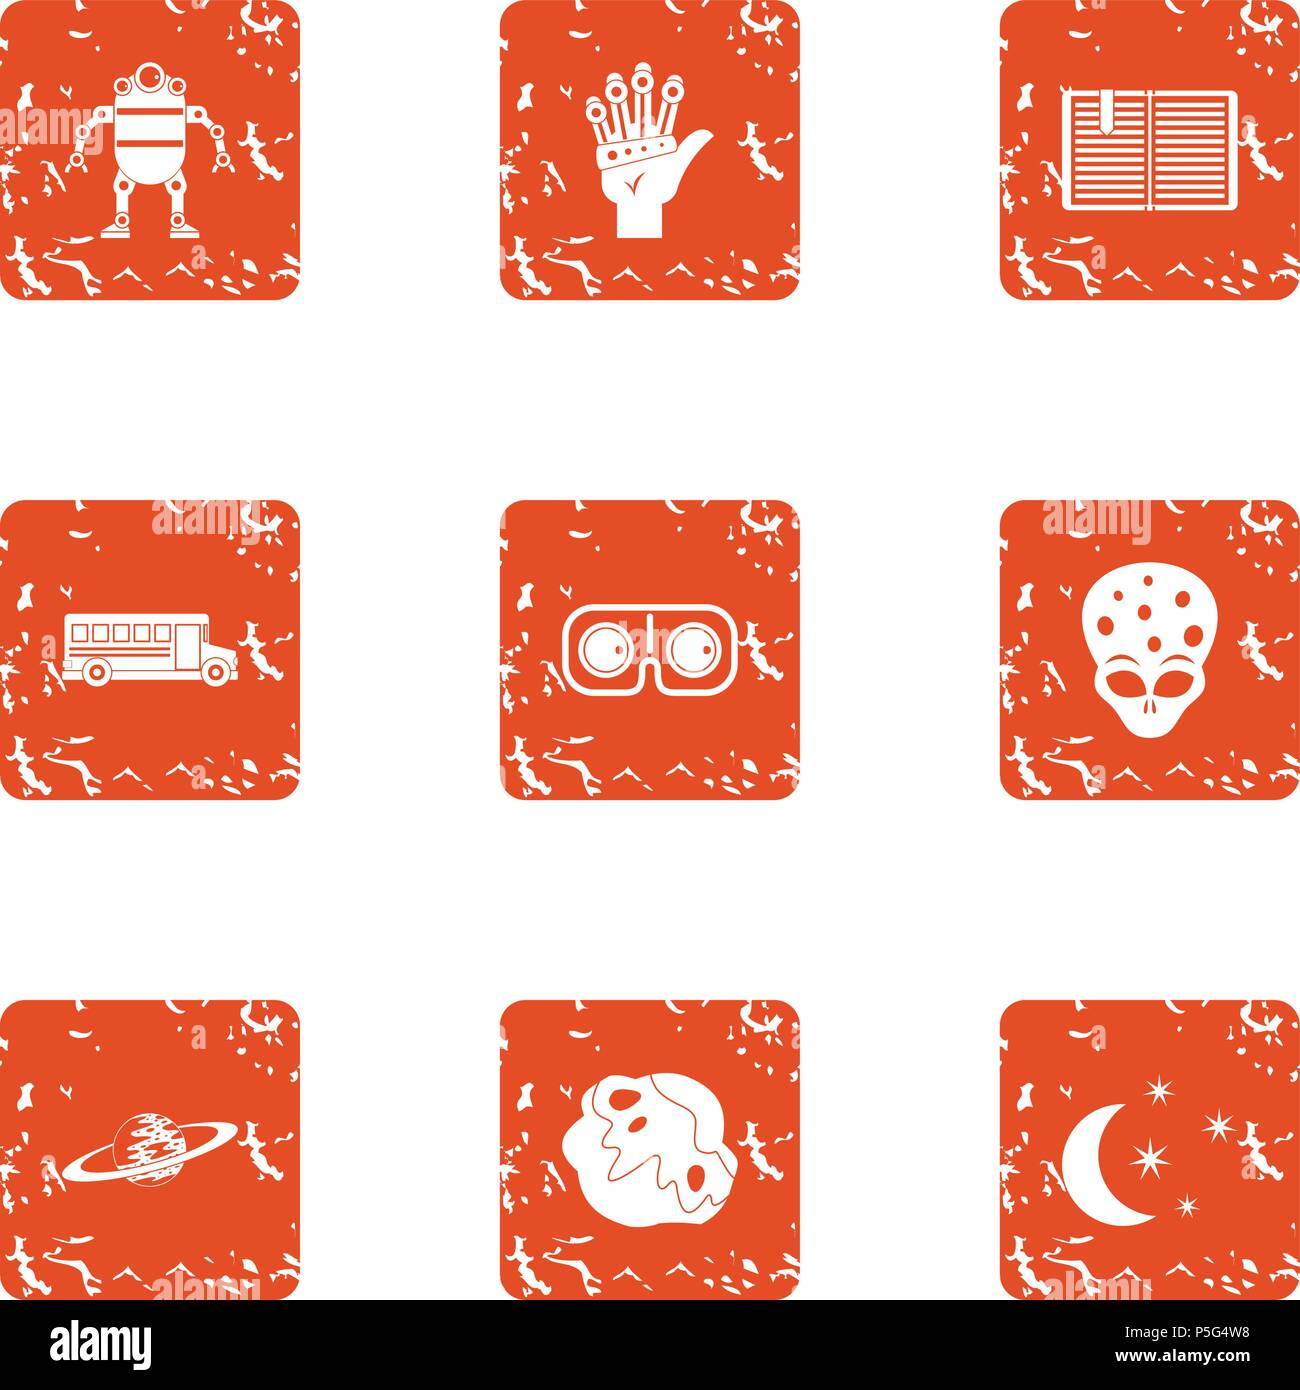 Space programme icons set, grunge style - Stock Vector